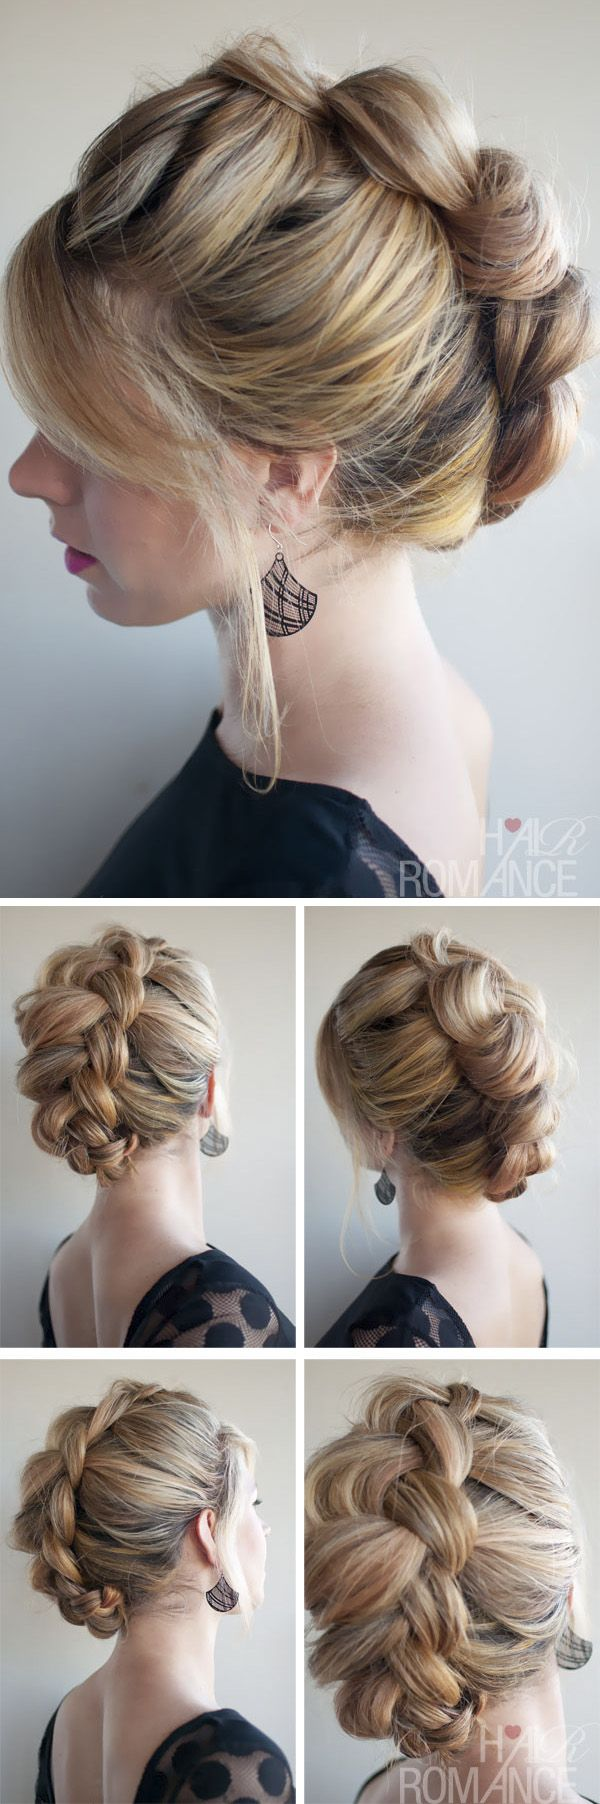 easy and chic hairstyle tutorials with braids chic hairstyles